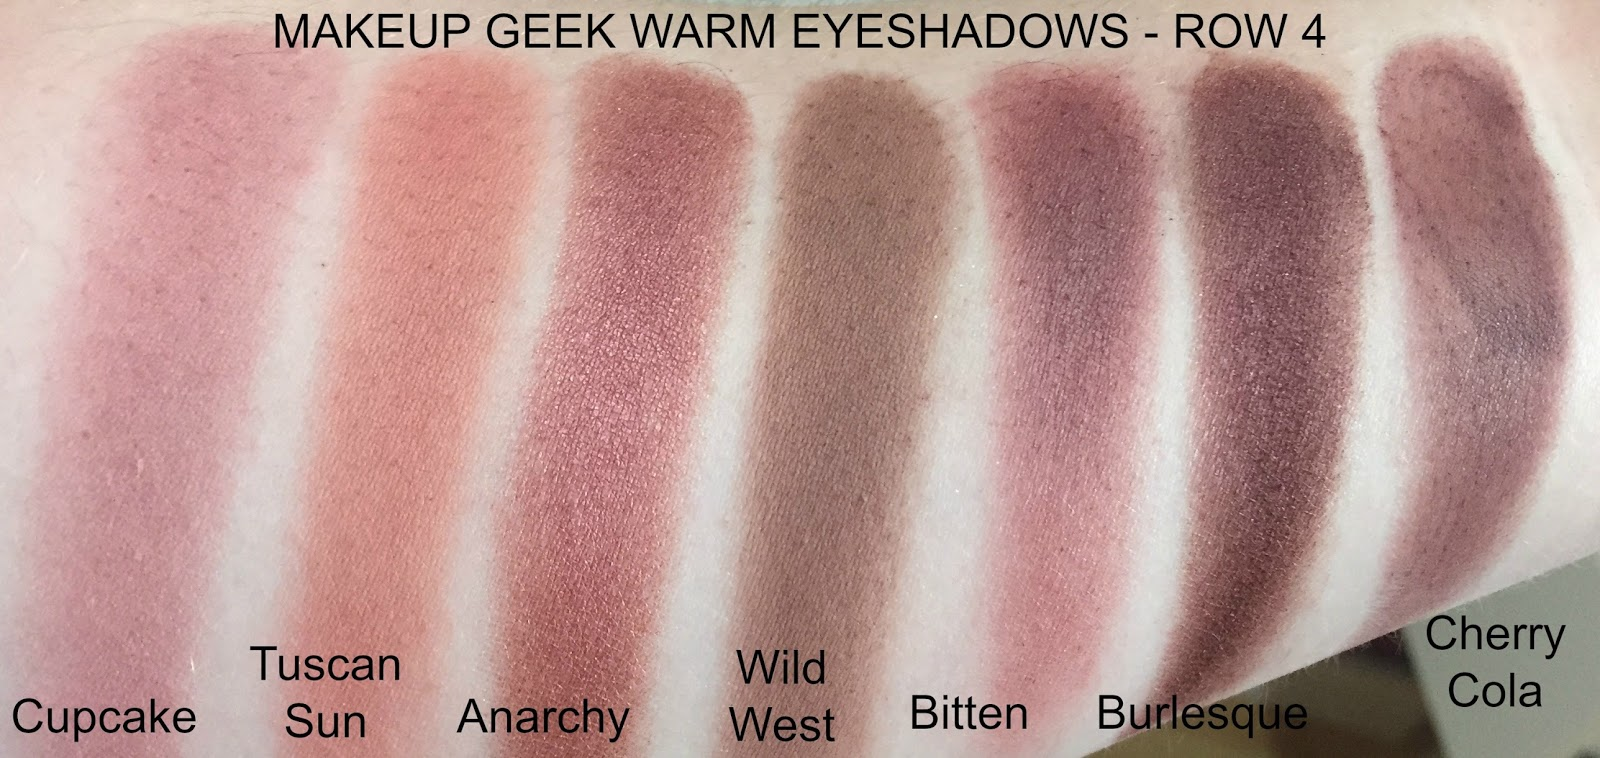 Cupcake is another one of my absolute favourite MUG eyeshadows - a gorgeous matte medium pink that looks incredible on the eyelids with warm or cool toned ...